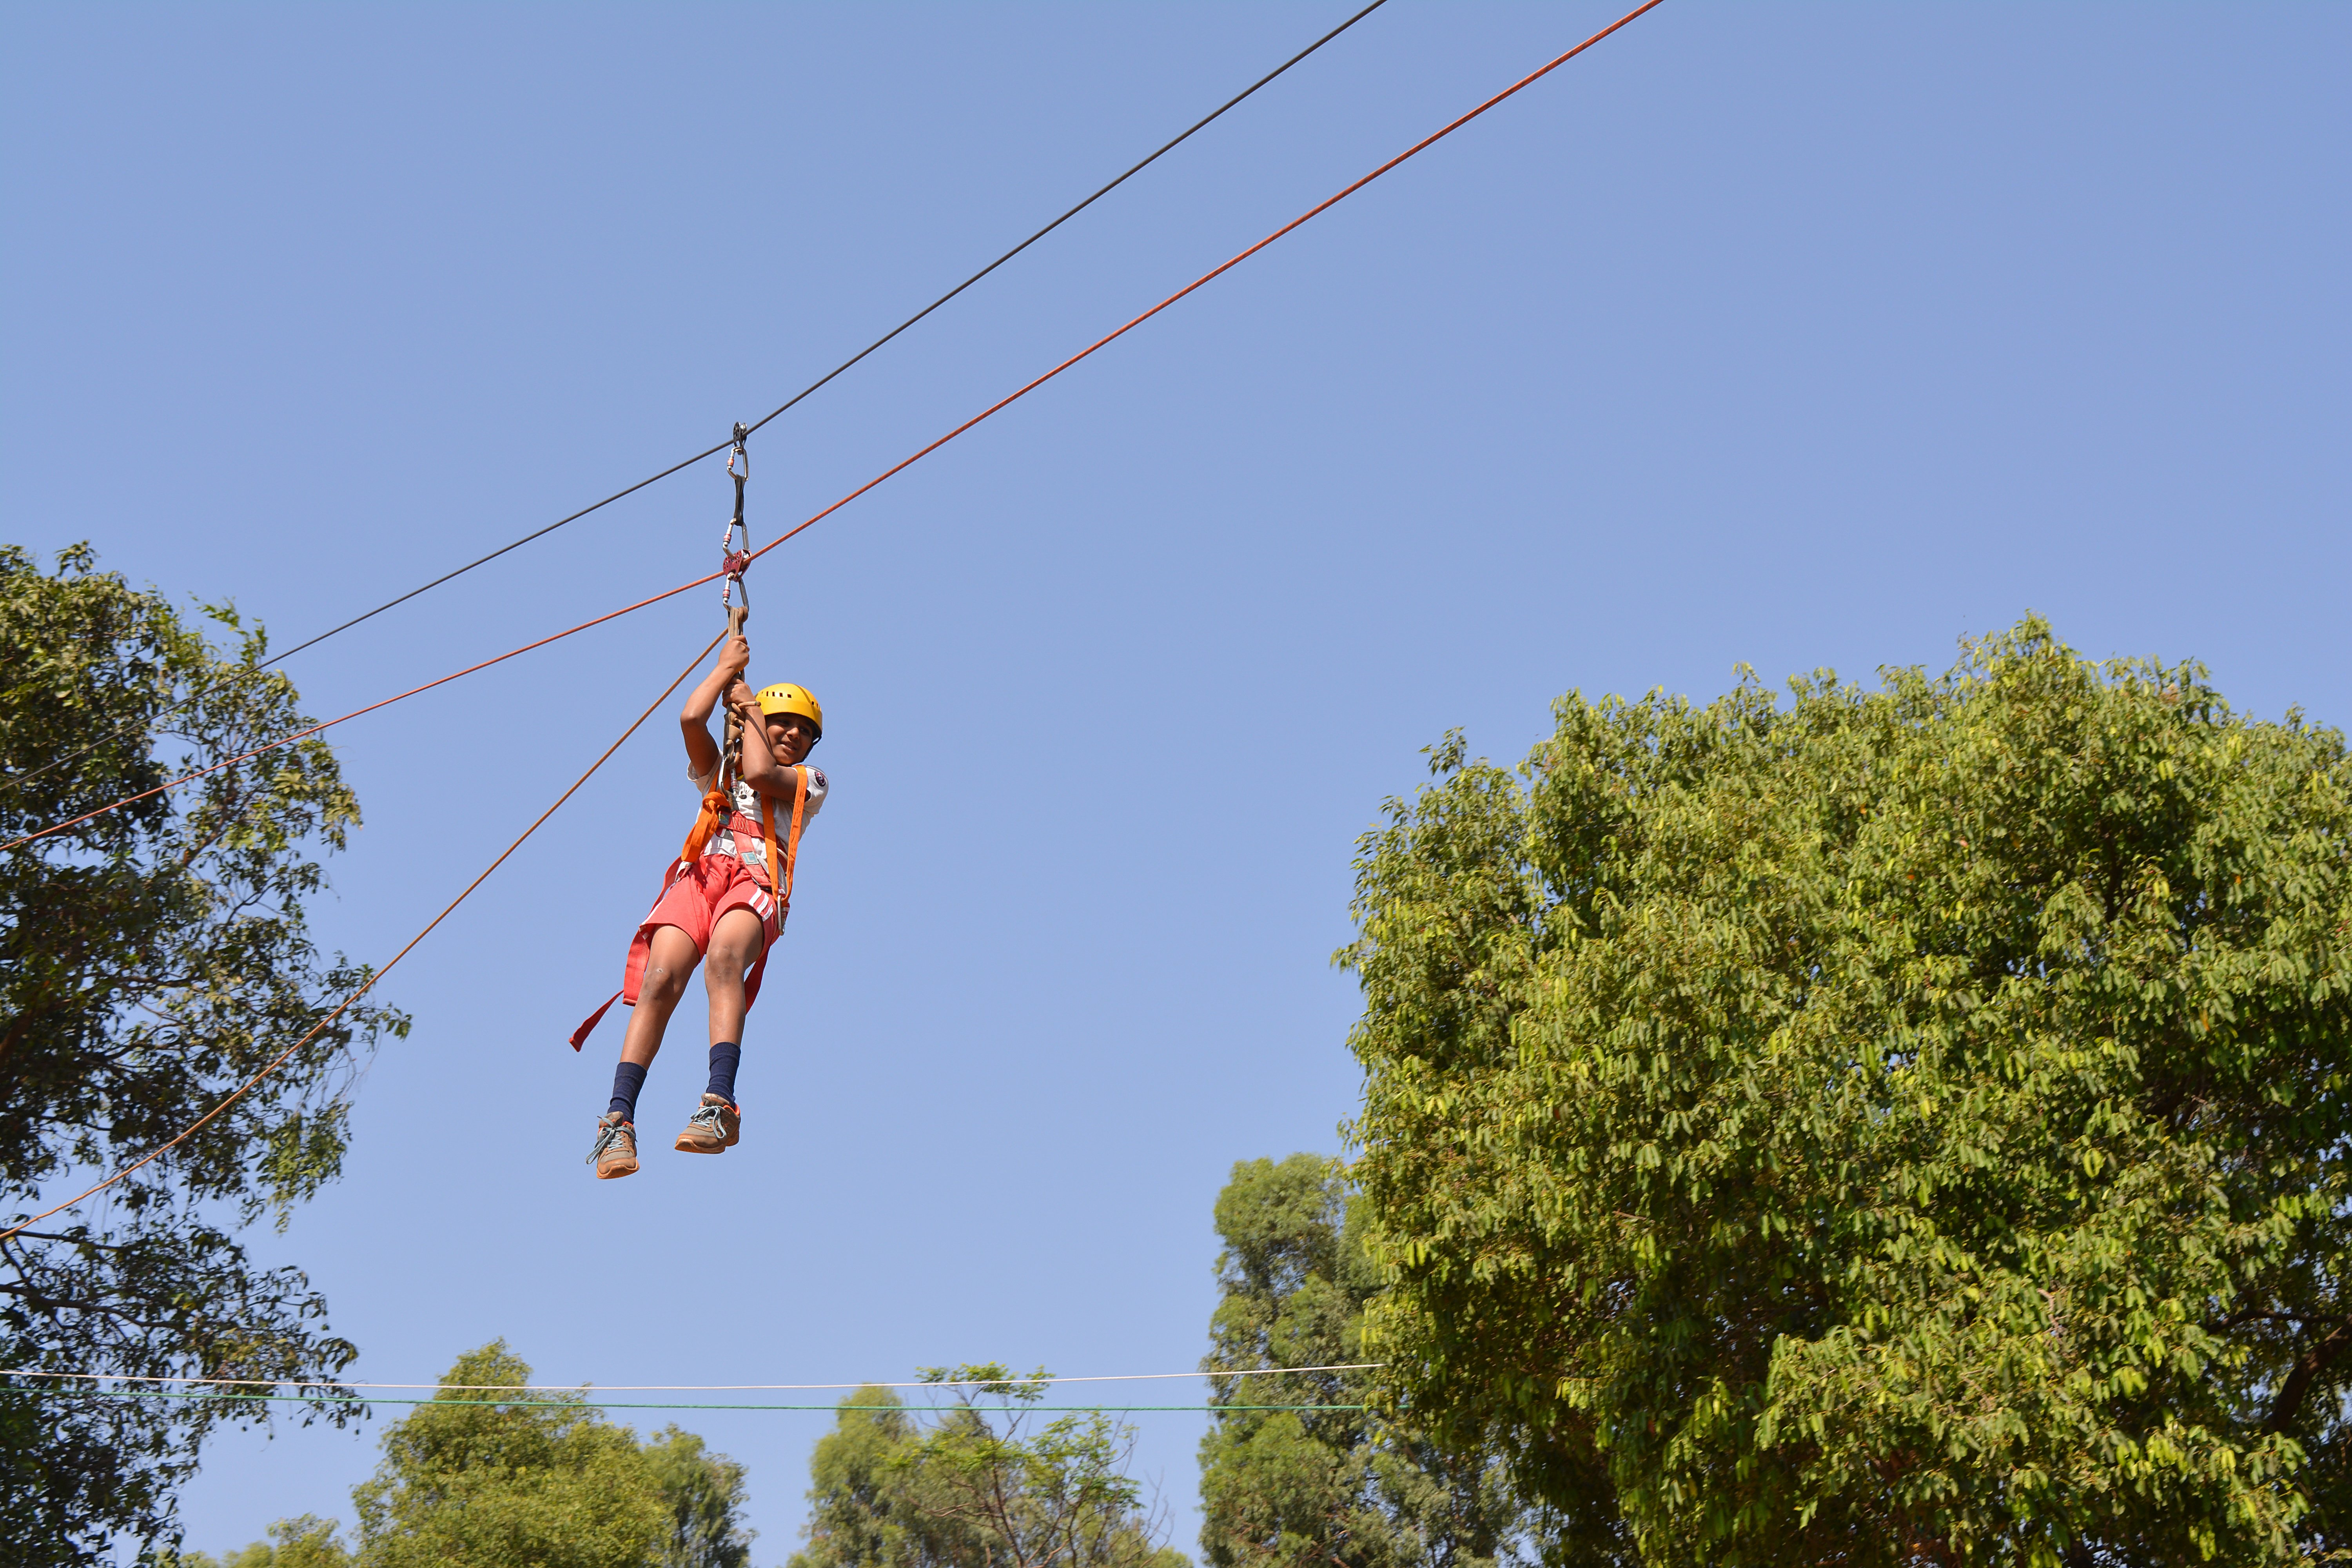 panchgani space adventure camp foliage outdoors